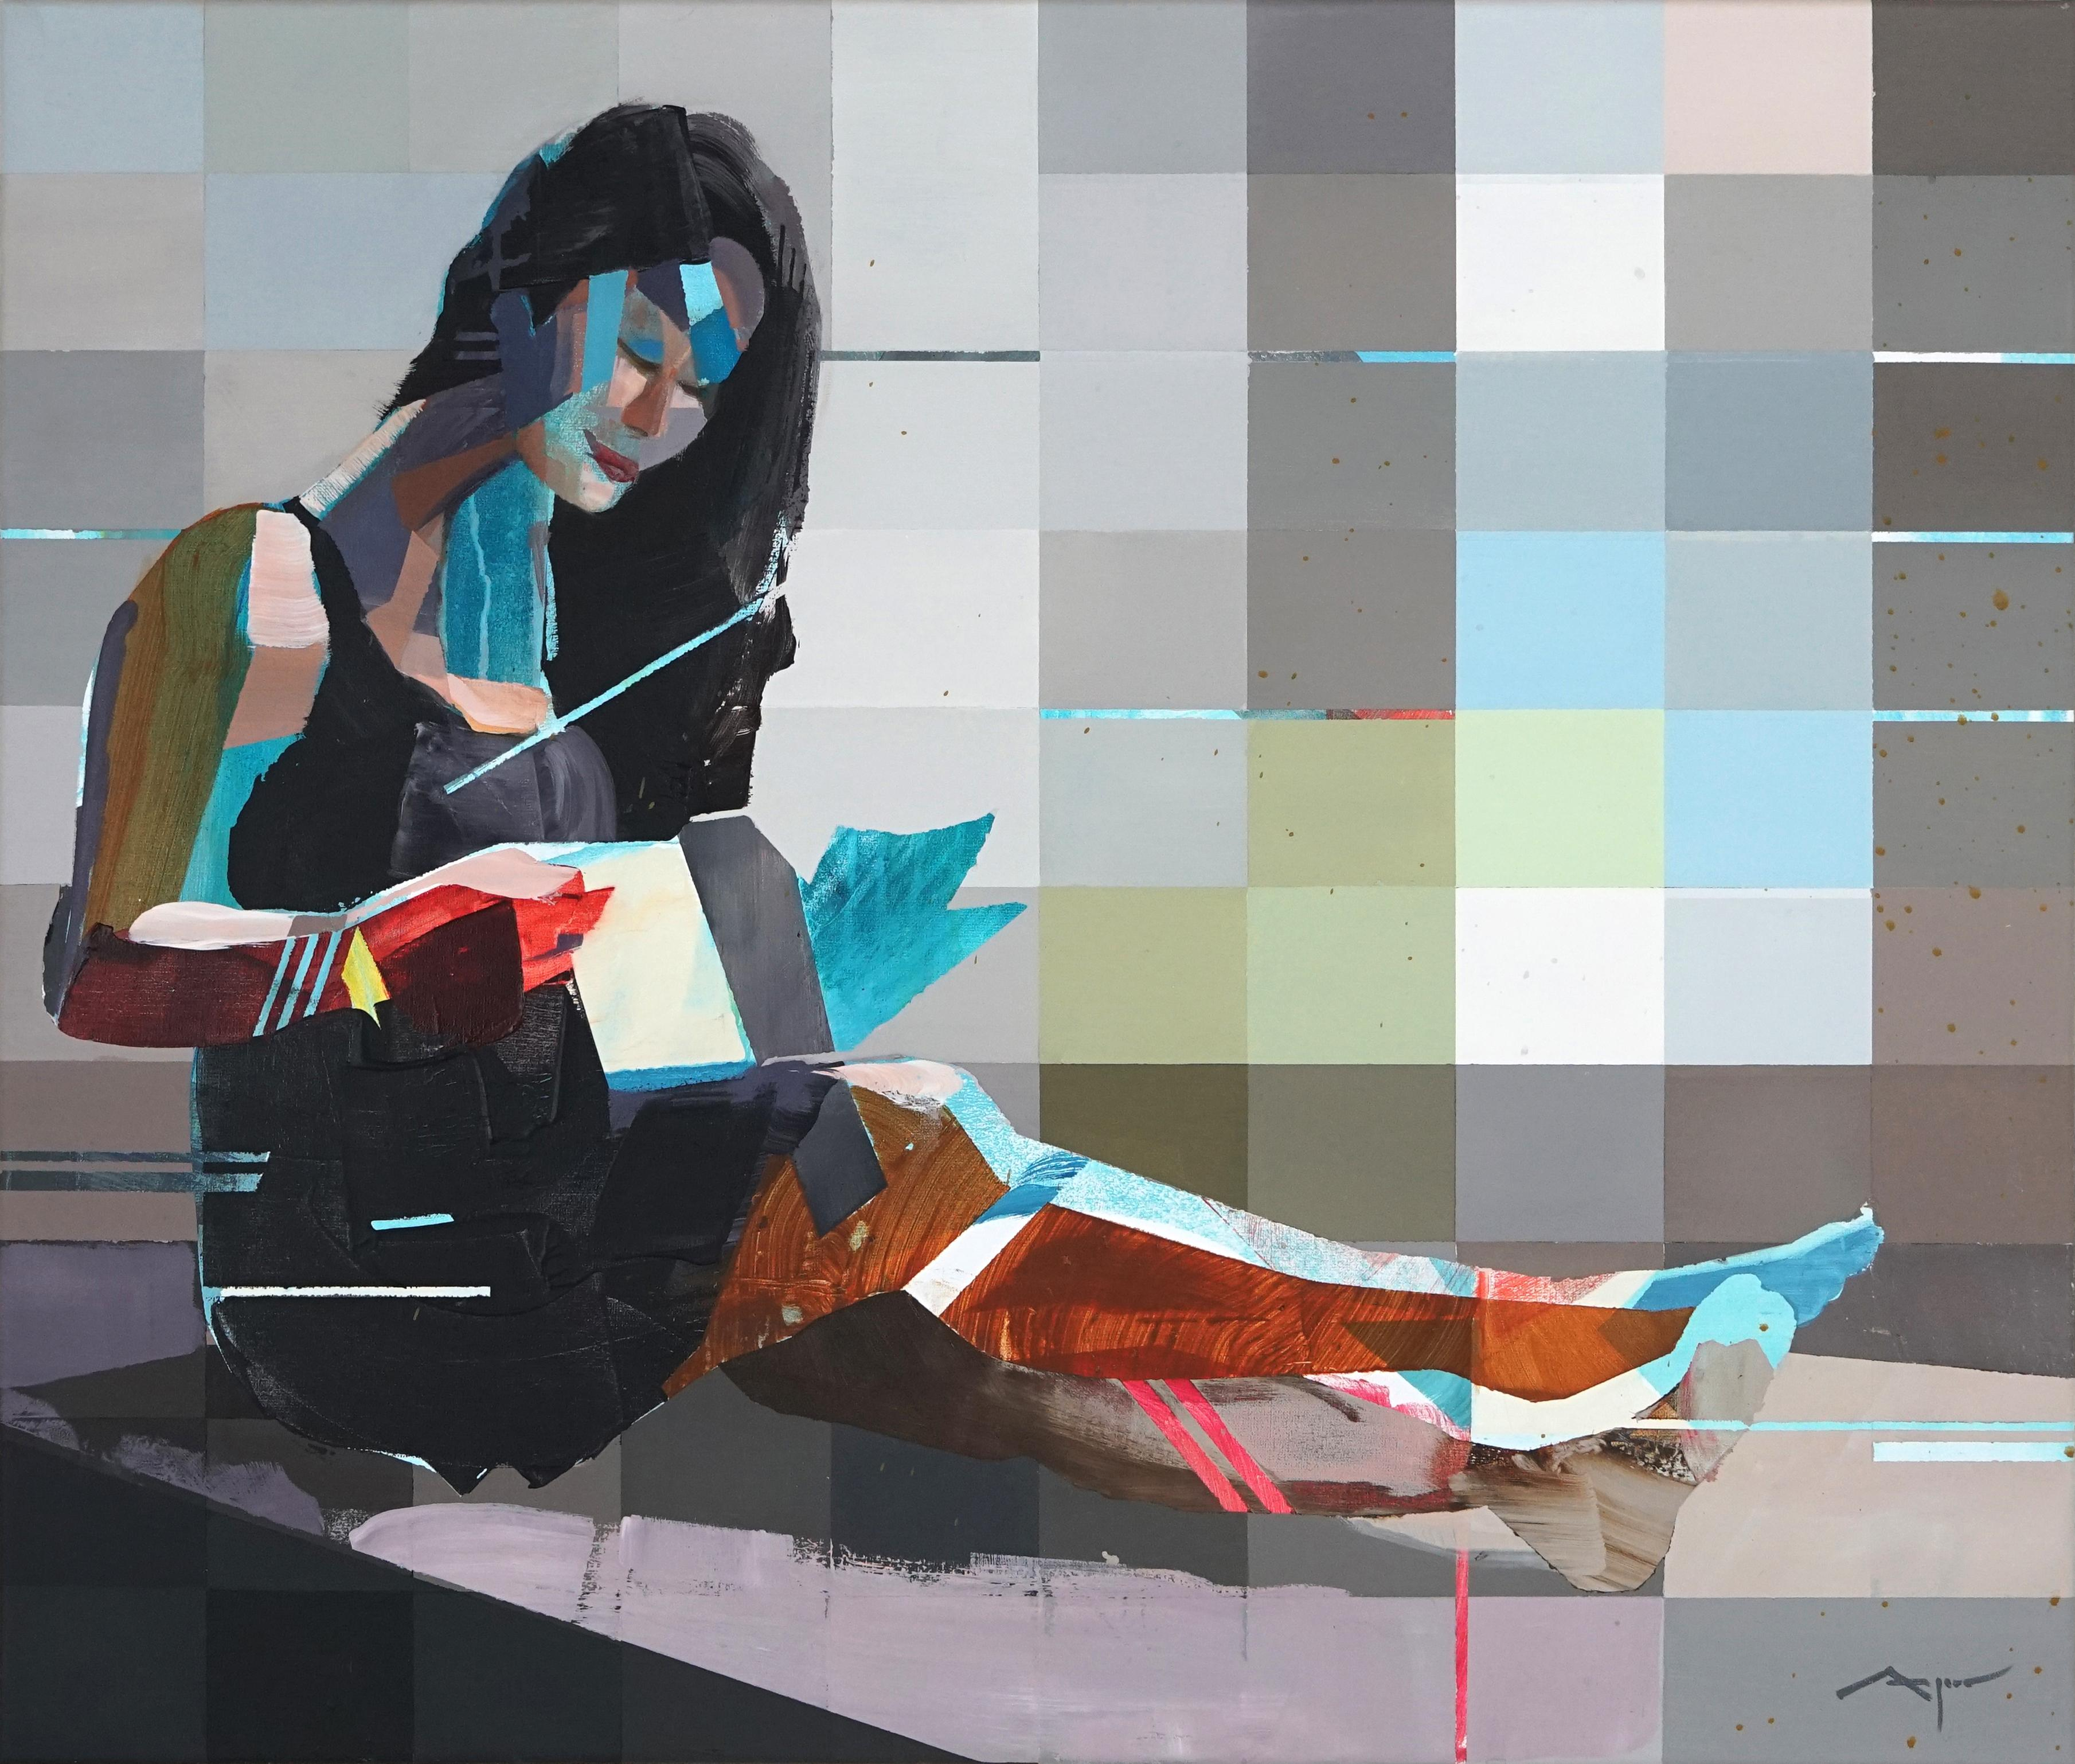 Jennifer reading- blue grey abstract and figurative painting of a women